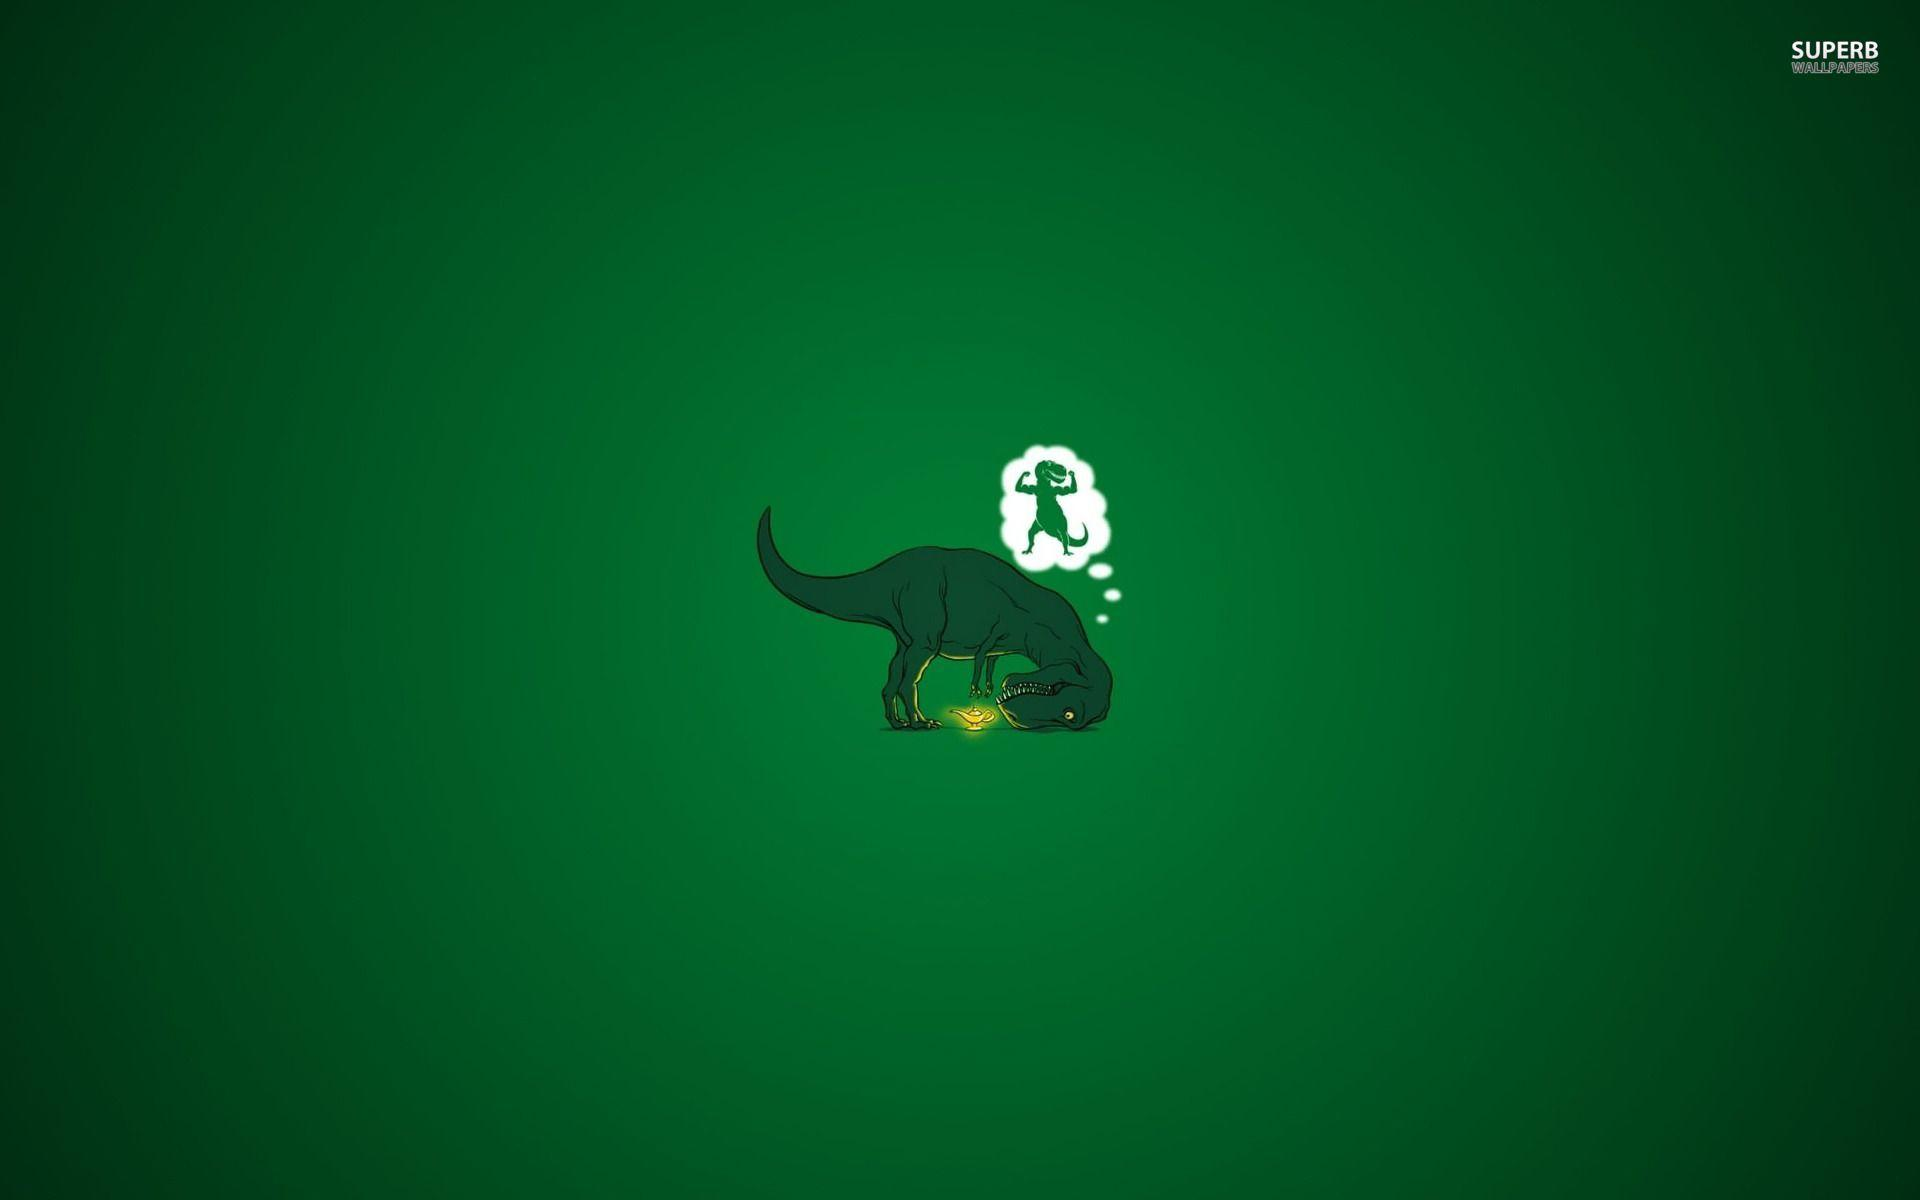 dino wallpapers wallpaper cave